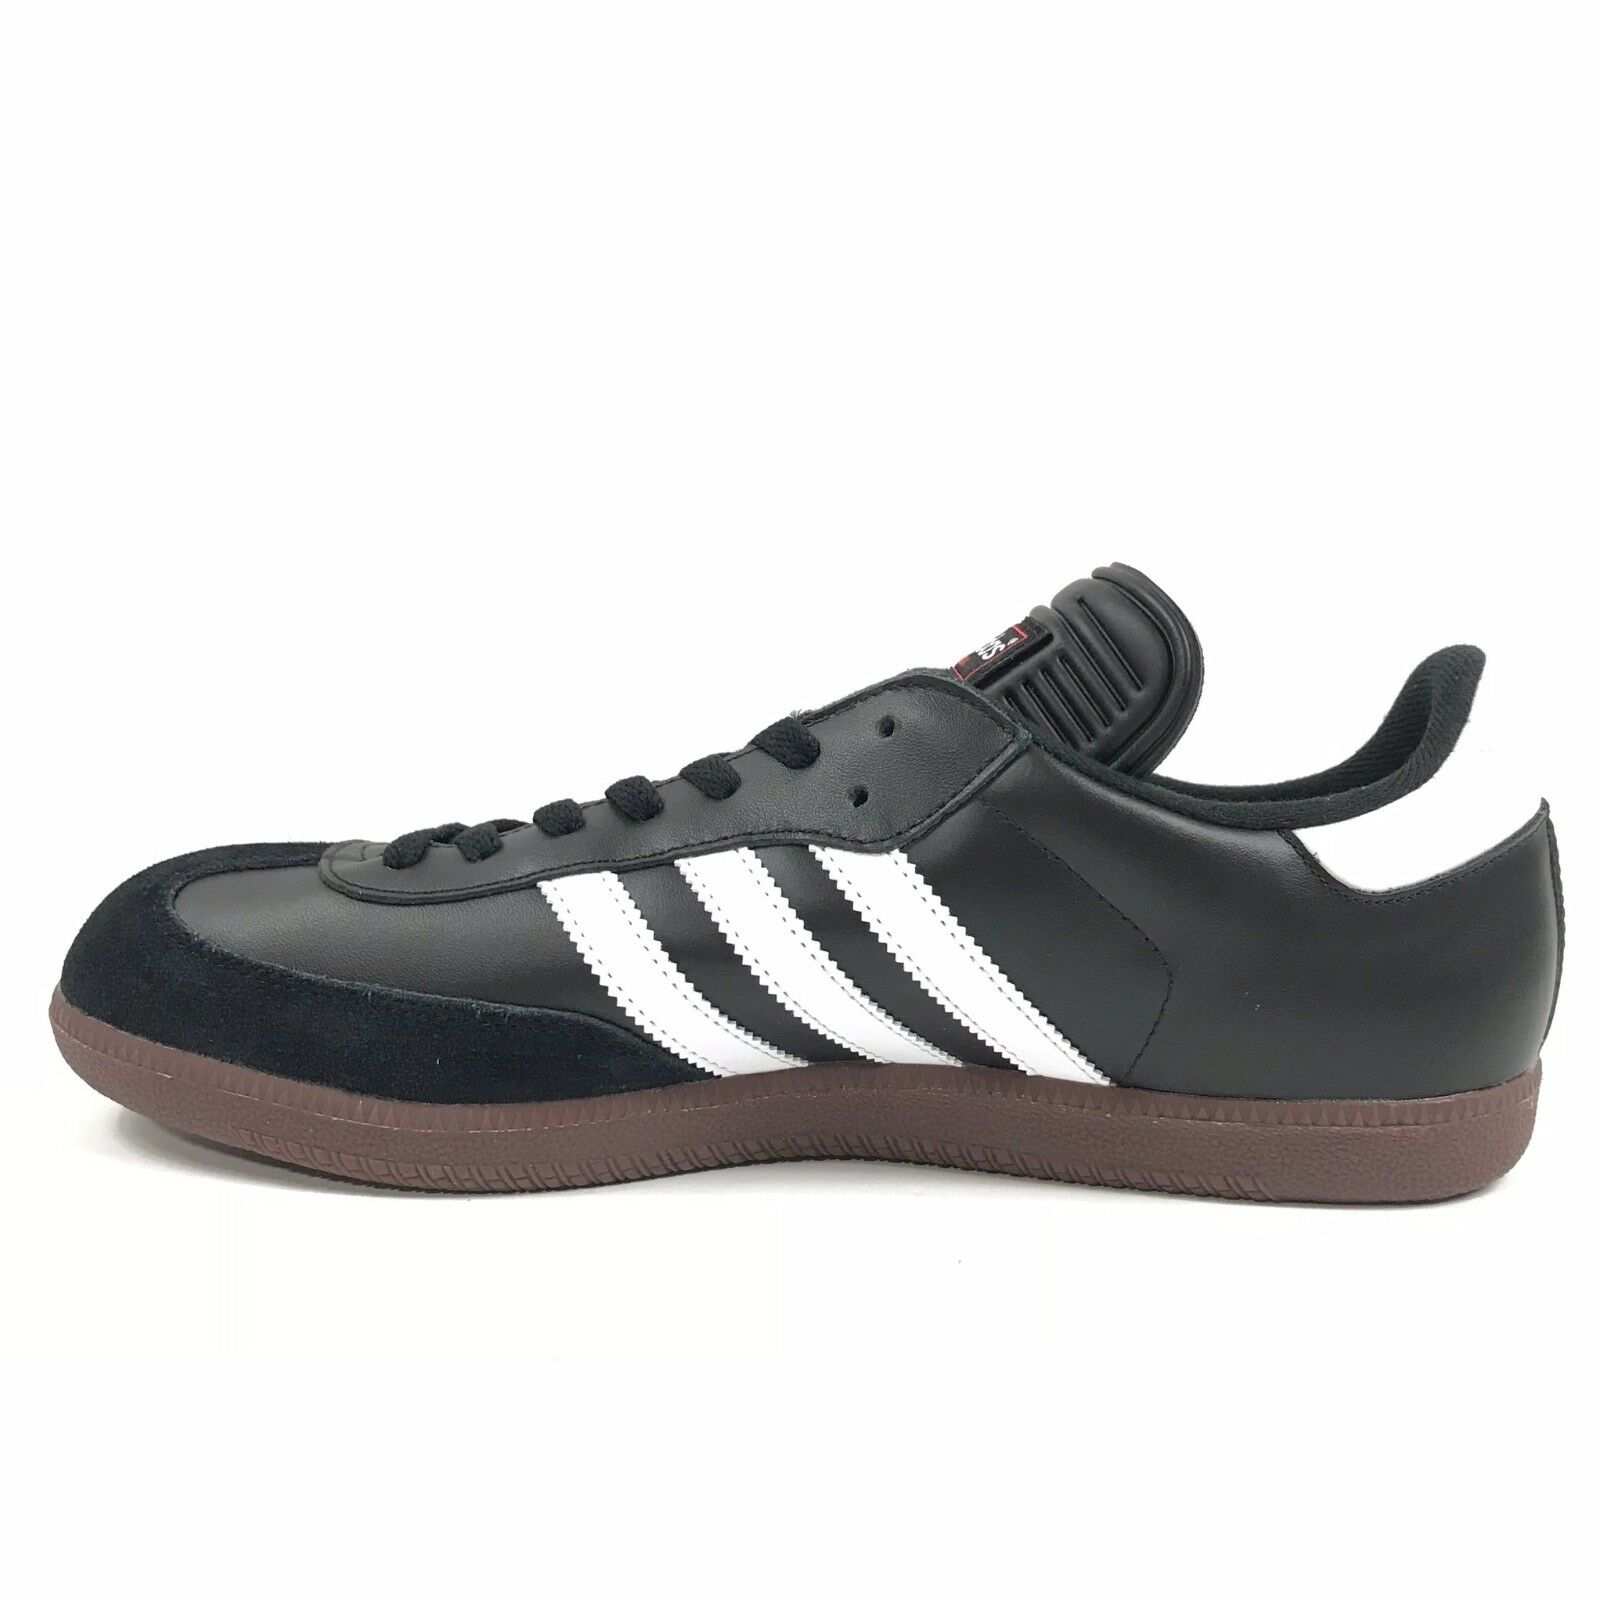 NWOB Adidas Mens Samba Classic Casual Soccer Soccer Soccer Athletic shoes Black White Sz 11.5 0caf25